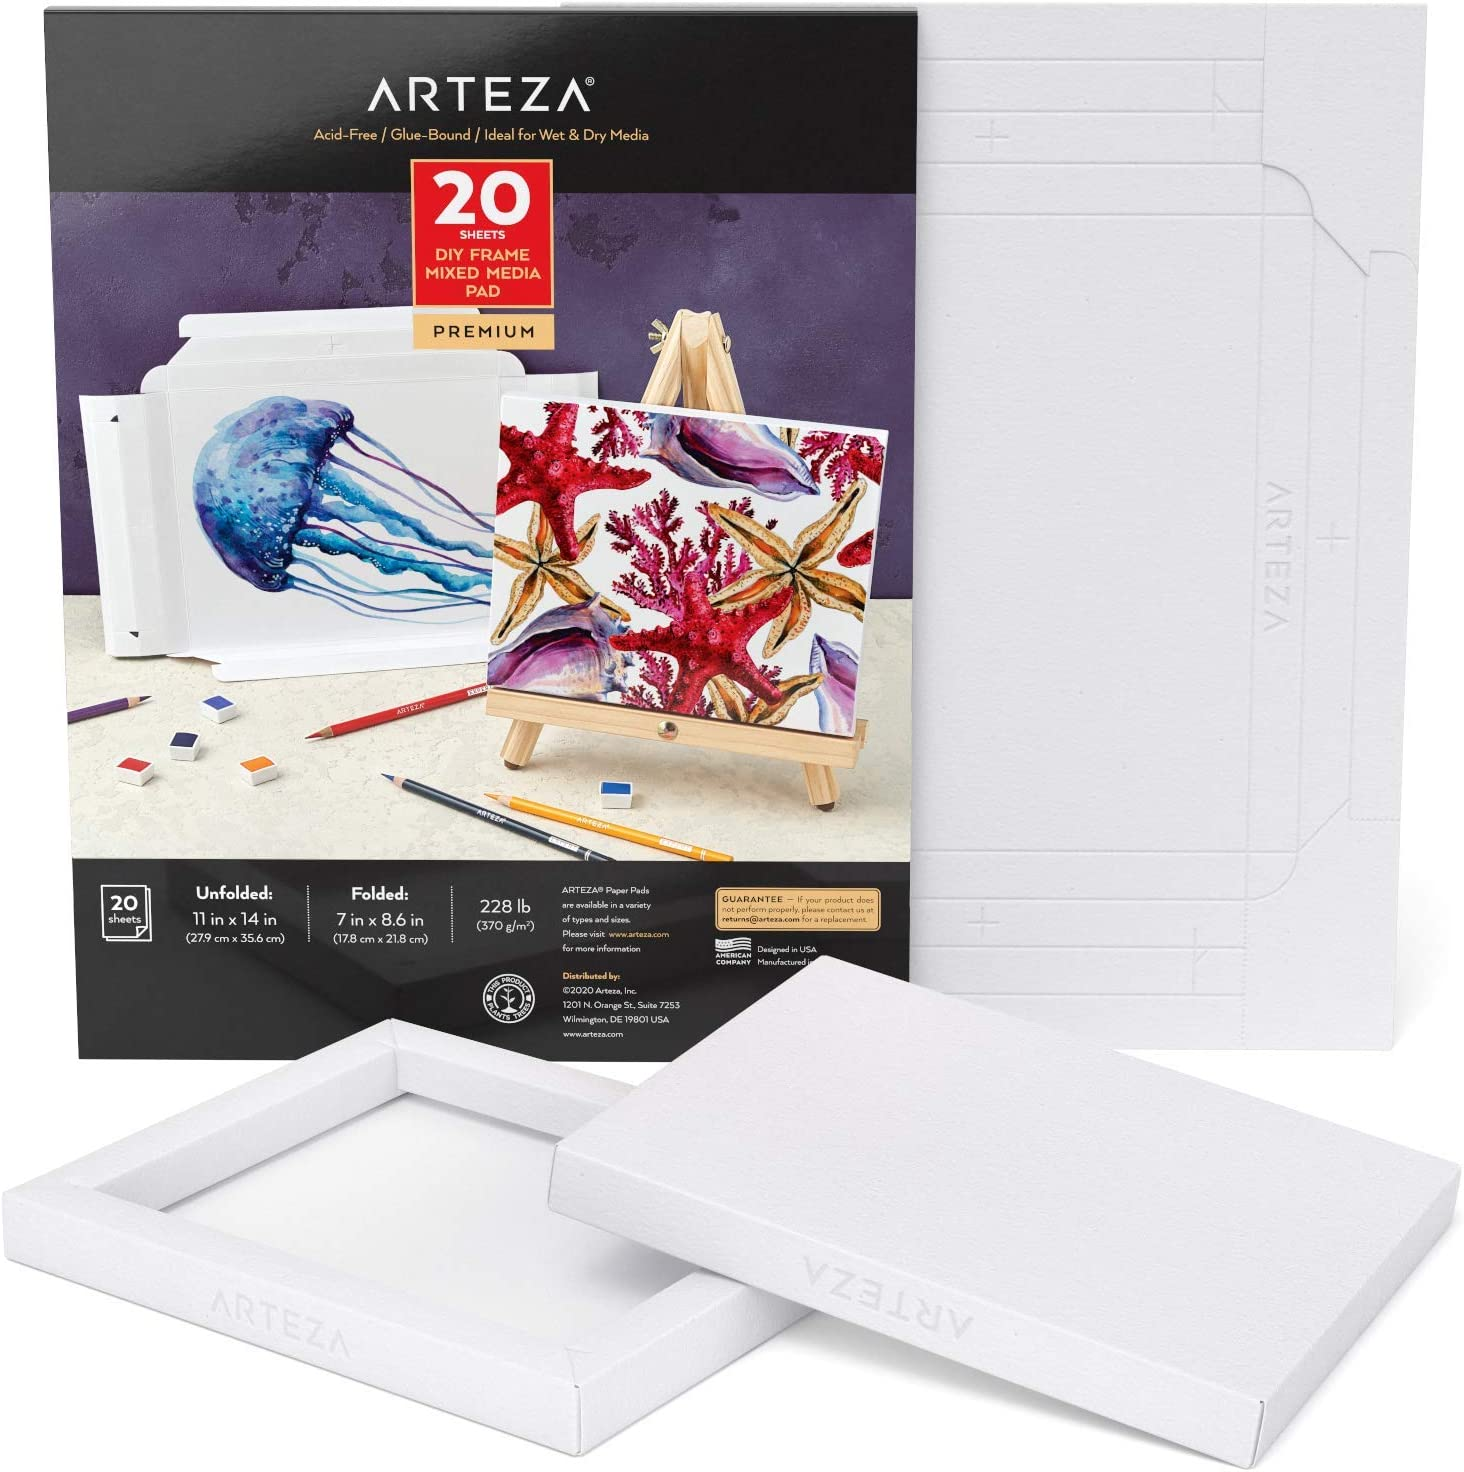 Arteza Mixed Media Paper Foldable Canvas Pad, 7x8.6 Inches, 20 Sheets, DIY Frame, Heavyweight Multimedia Paper, 228 lb, 370 GSM, Acid-Free, Wood Pulp Pad for Painting & Mixed Media Art